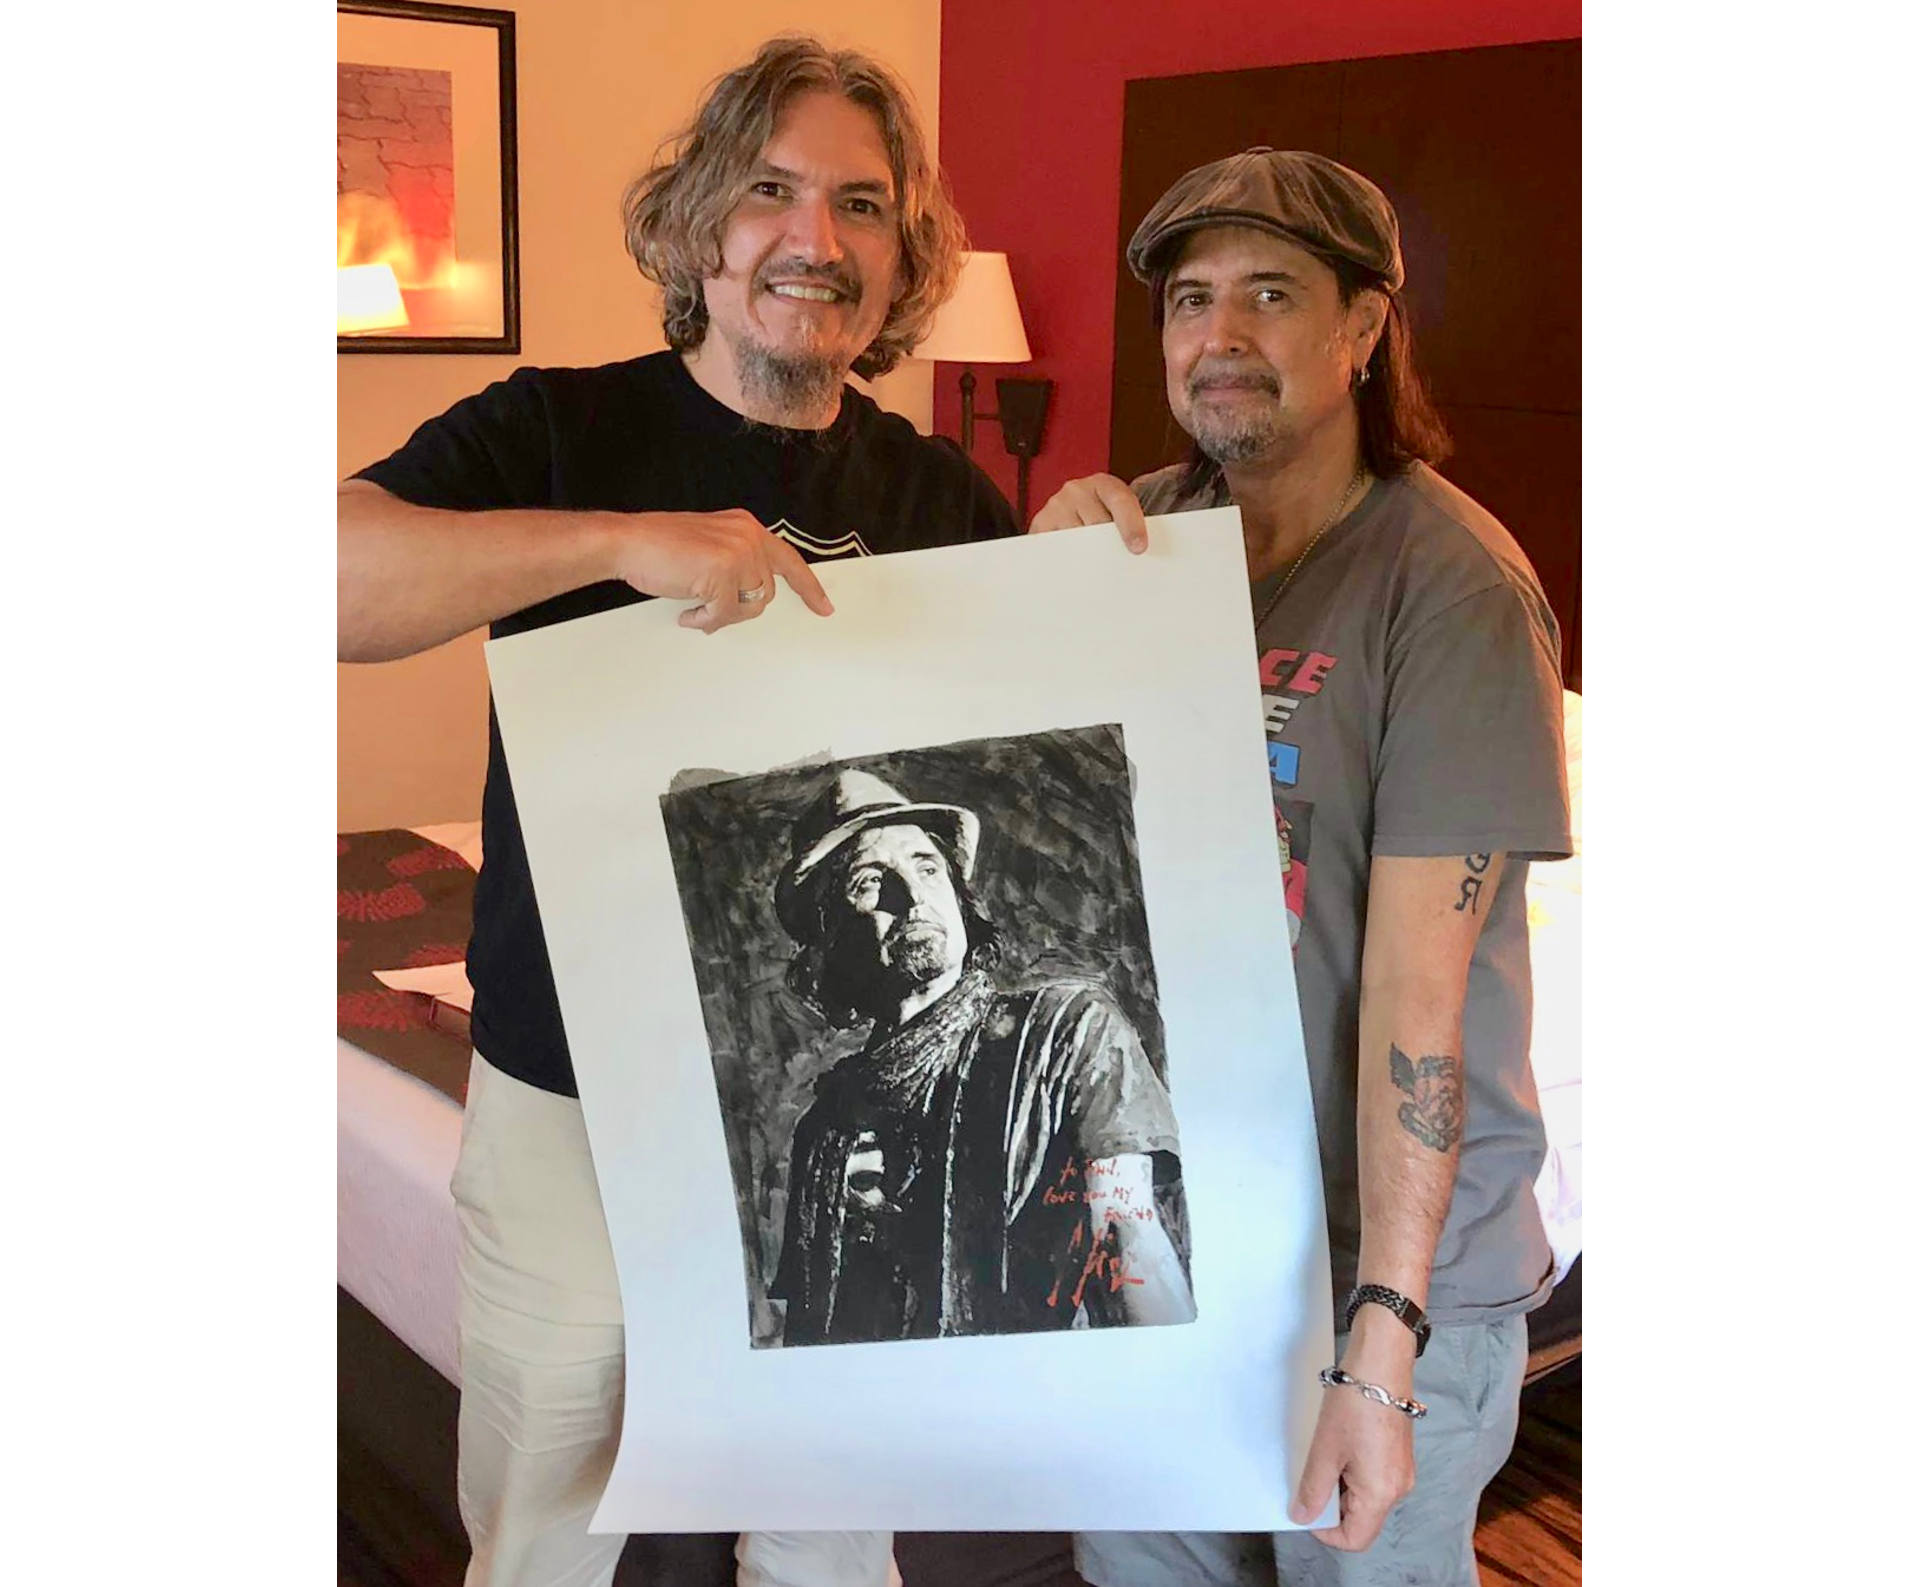 Phil Campbell standing next to Fabian Perez holding portrait